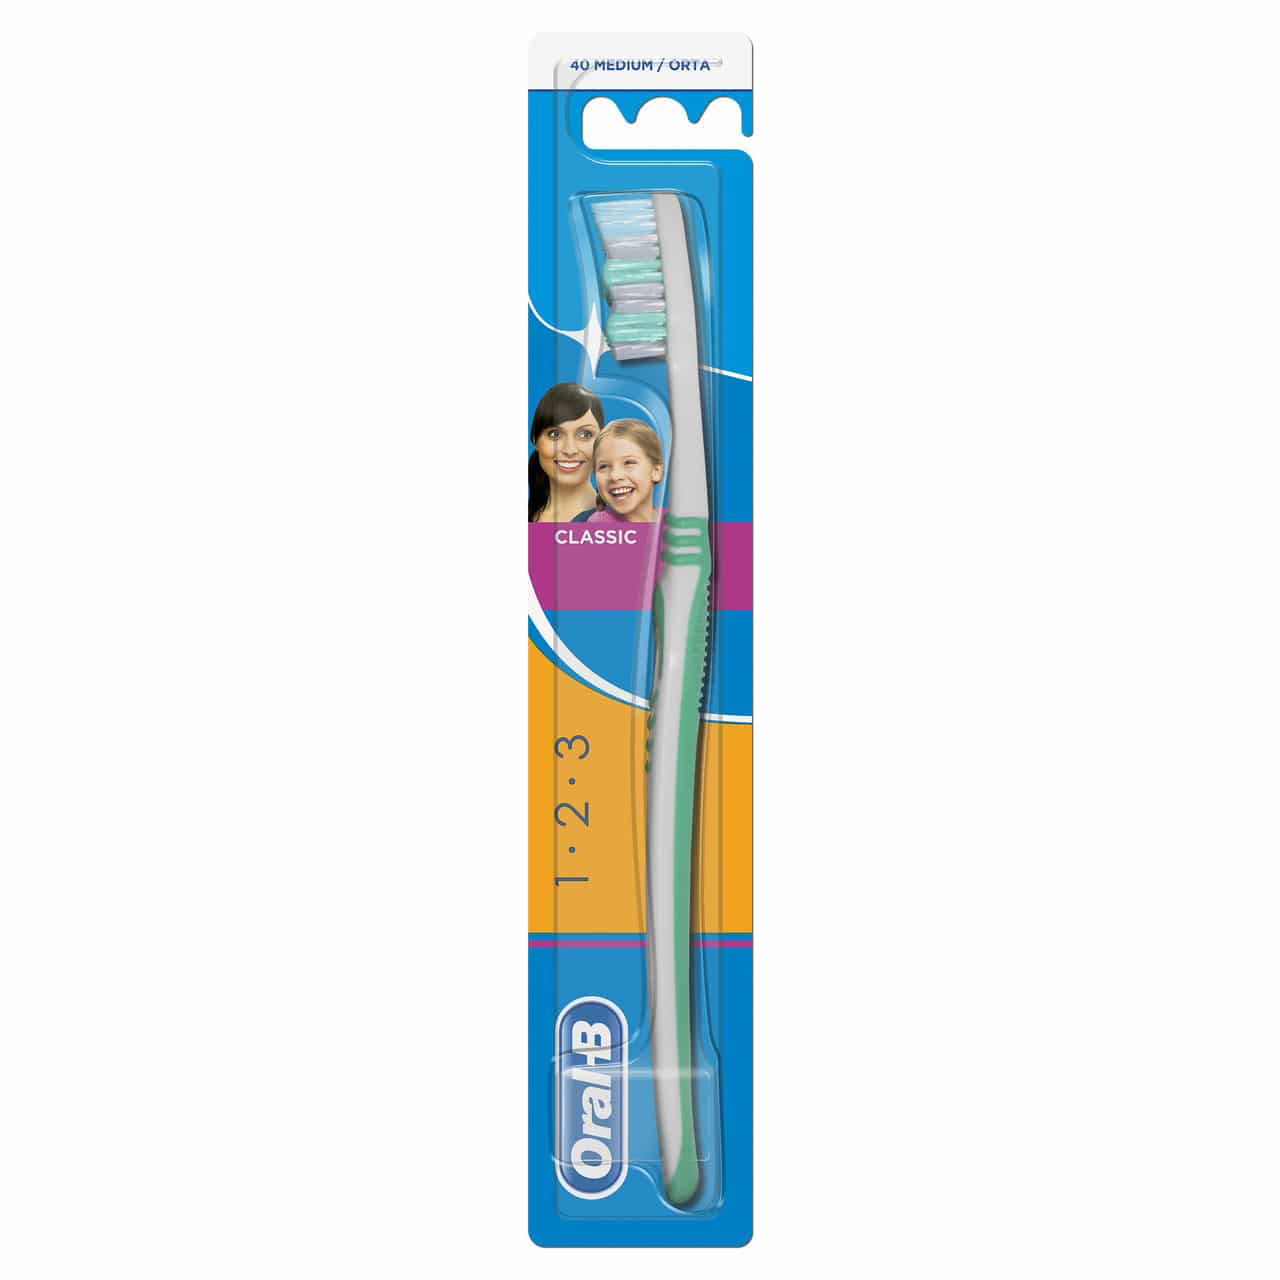 ORAL B TOOTHBRUSH CLASSIC 40MED